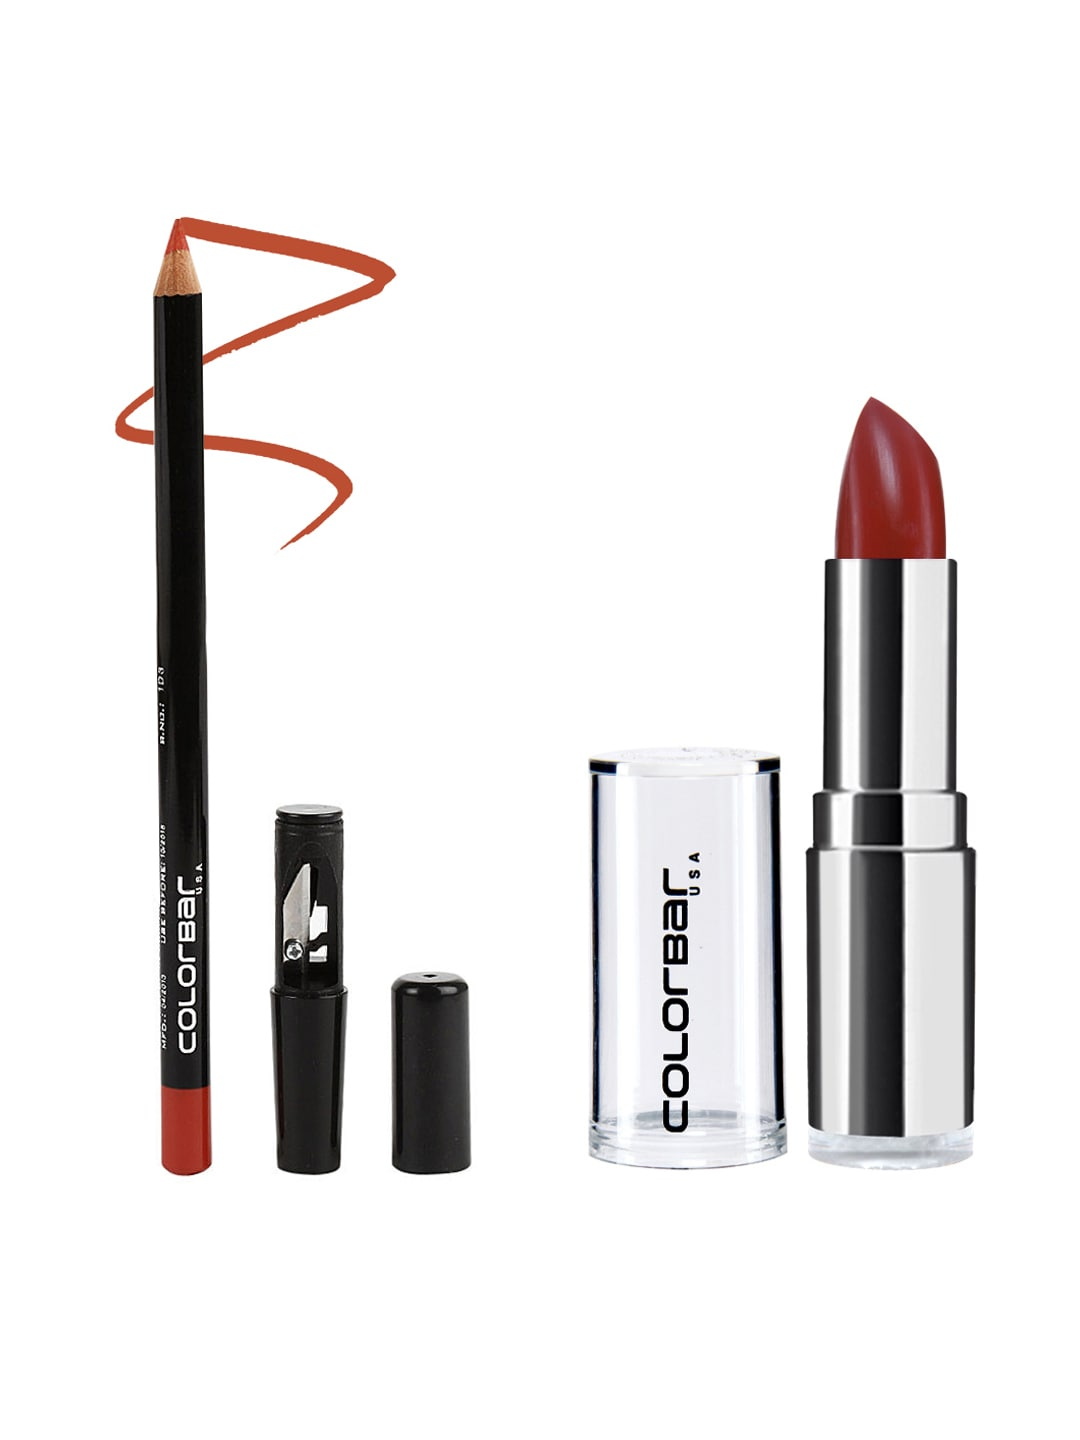 Colorbar Pack of Lipstick & Lipliner image